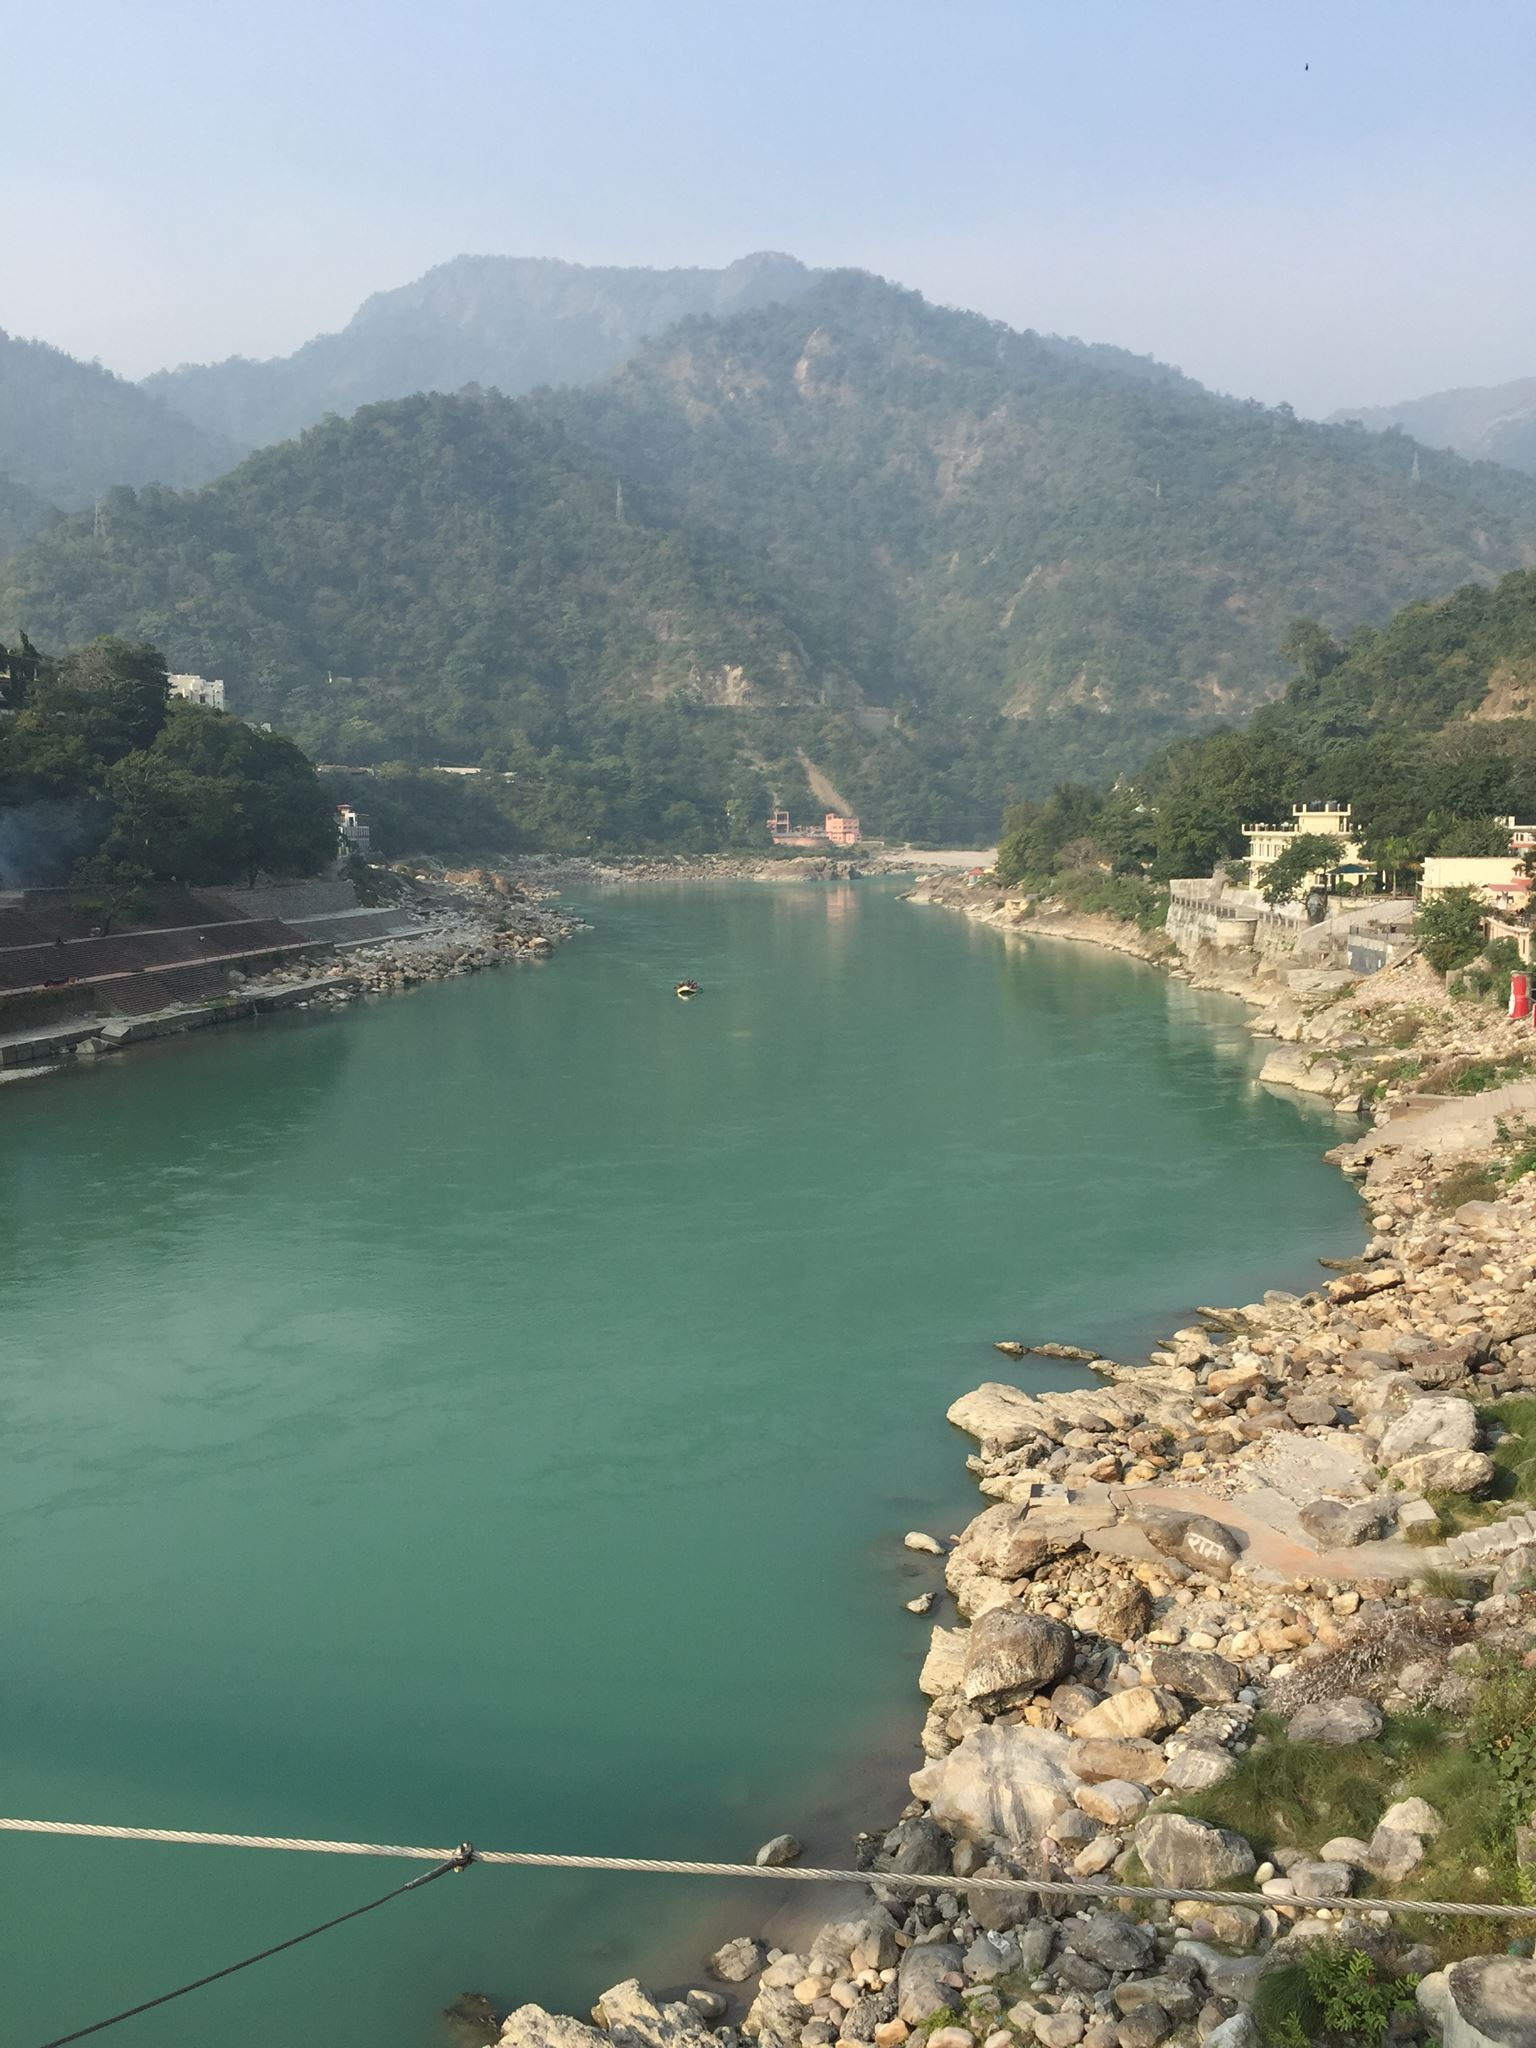 The Ganges as it leaves the mountains, Rishikesh